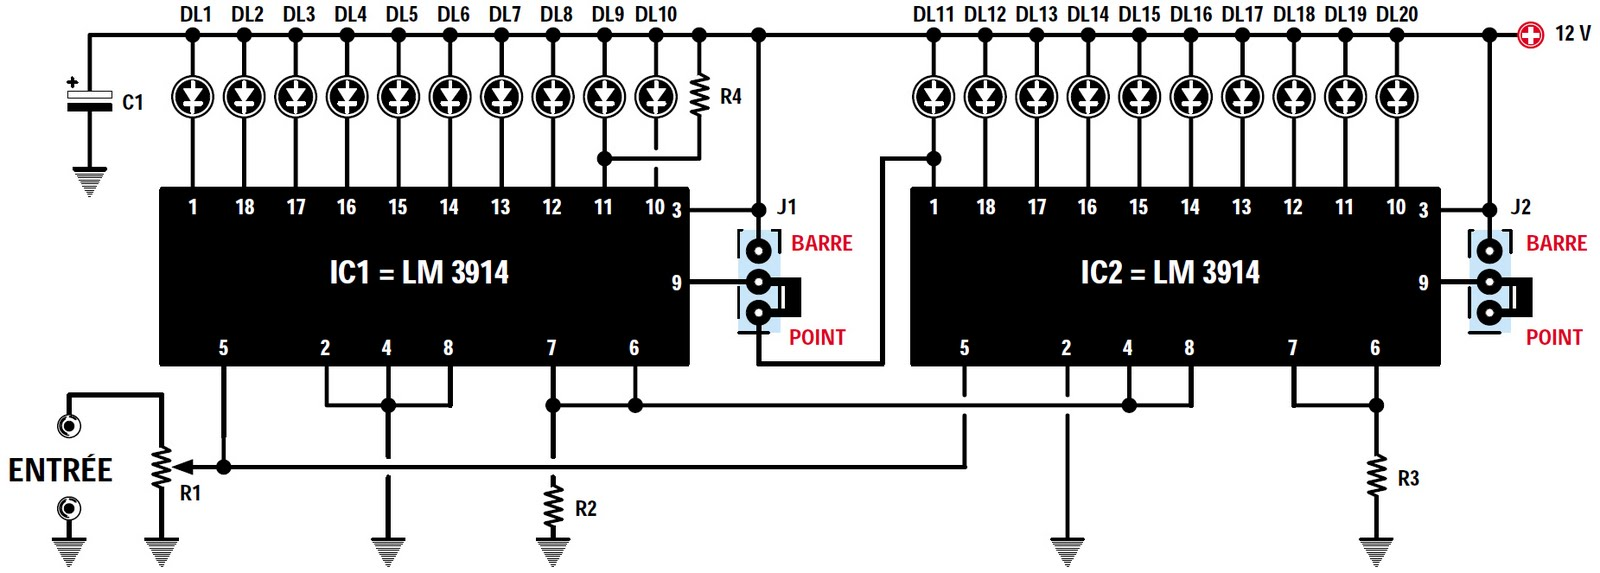 All About Lm3914 12v Battery Monitor Circuit Electronic Circuits Led Display Charging Lm317 Aku Sarj Devre